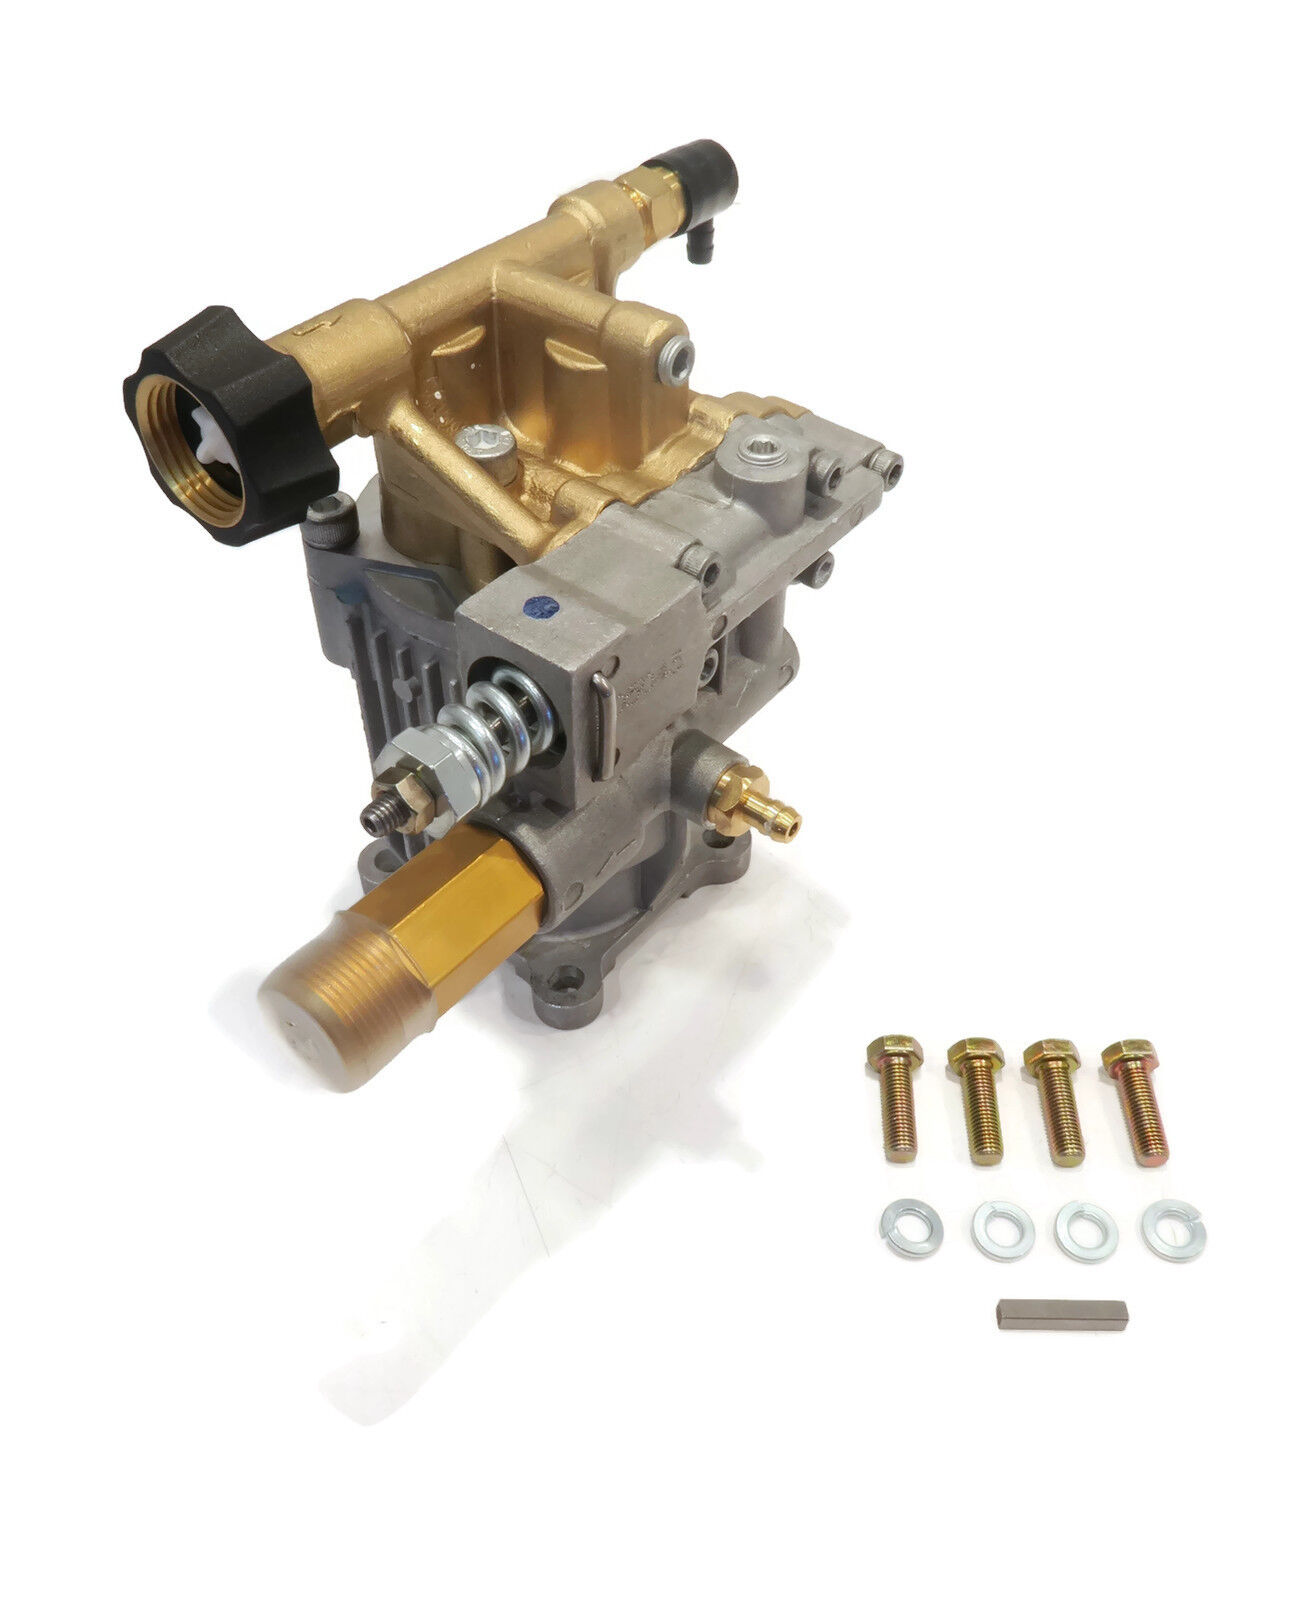 For GENERAC Units New OEM 3000 psi AR POWER PRESSURE WASHER WATER PUMP